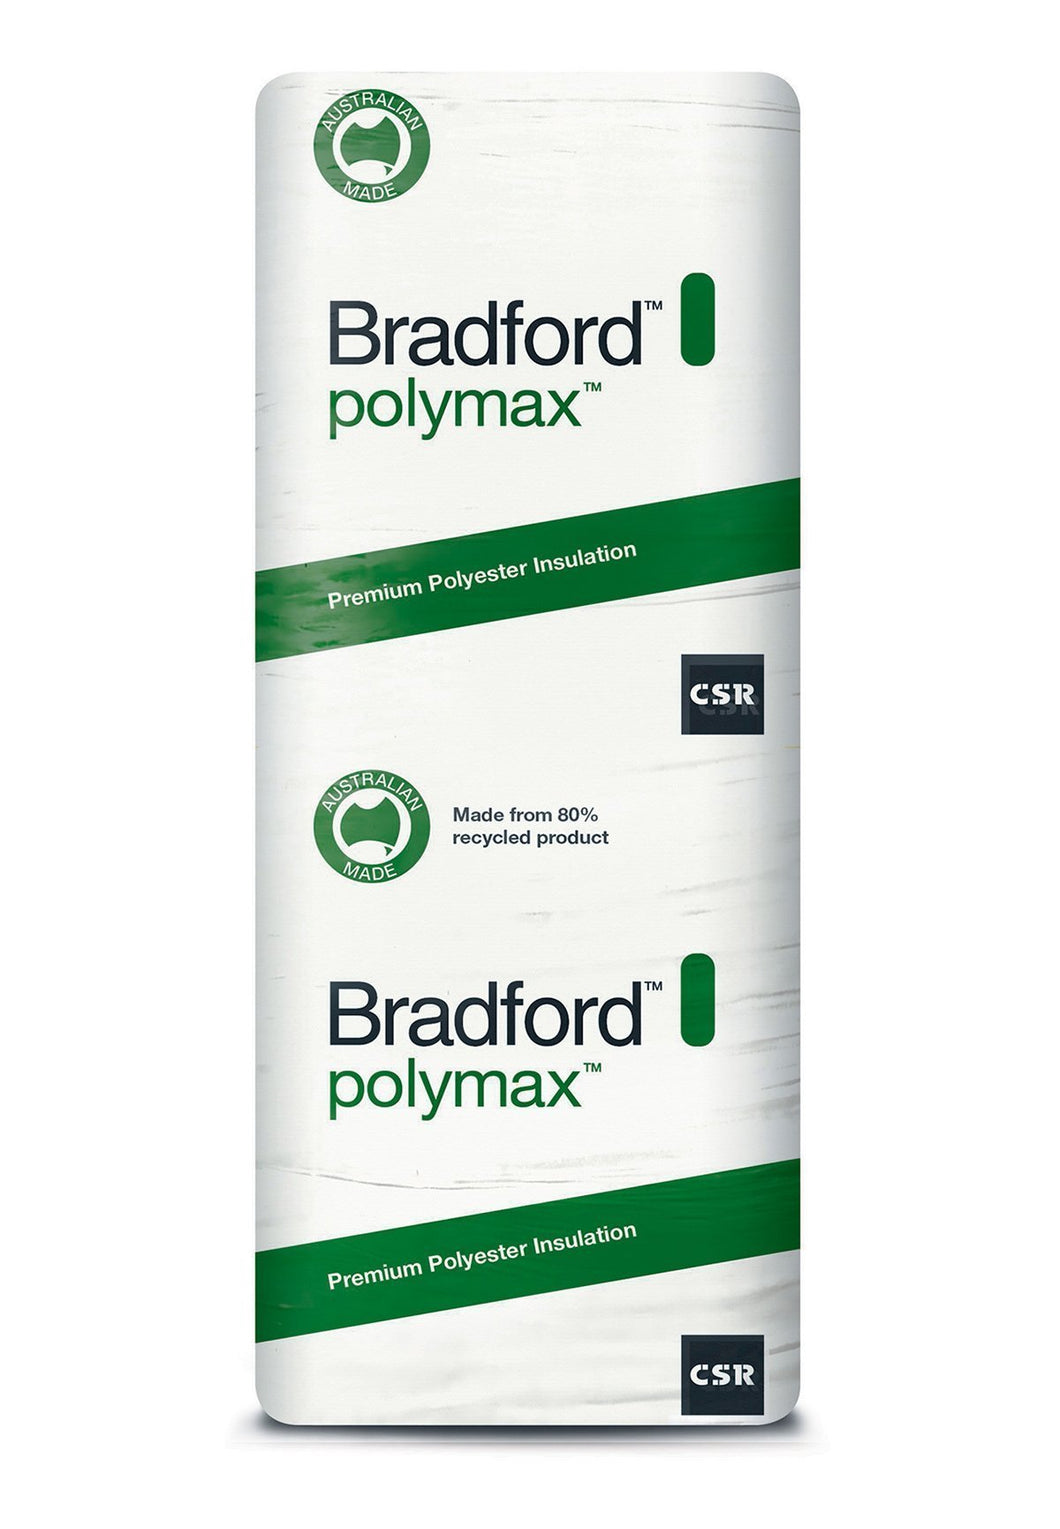 Bradford Polymax Ceiling Insulation Batts - R2.5 - 1160 x 580mm - 5.4m²/pack - Patnicar Insulation